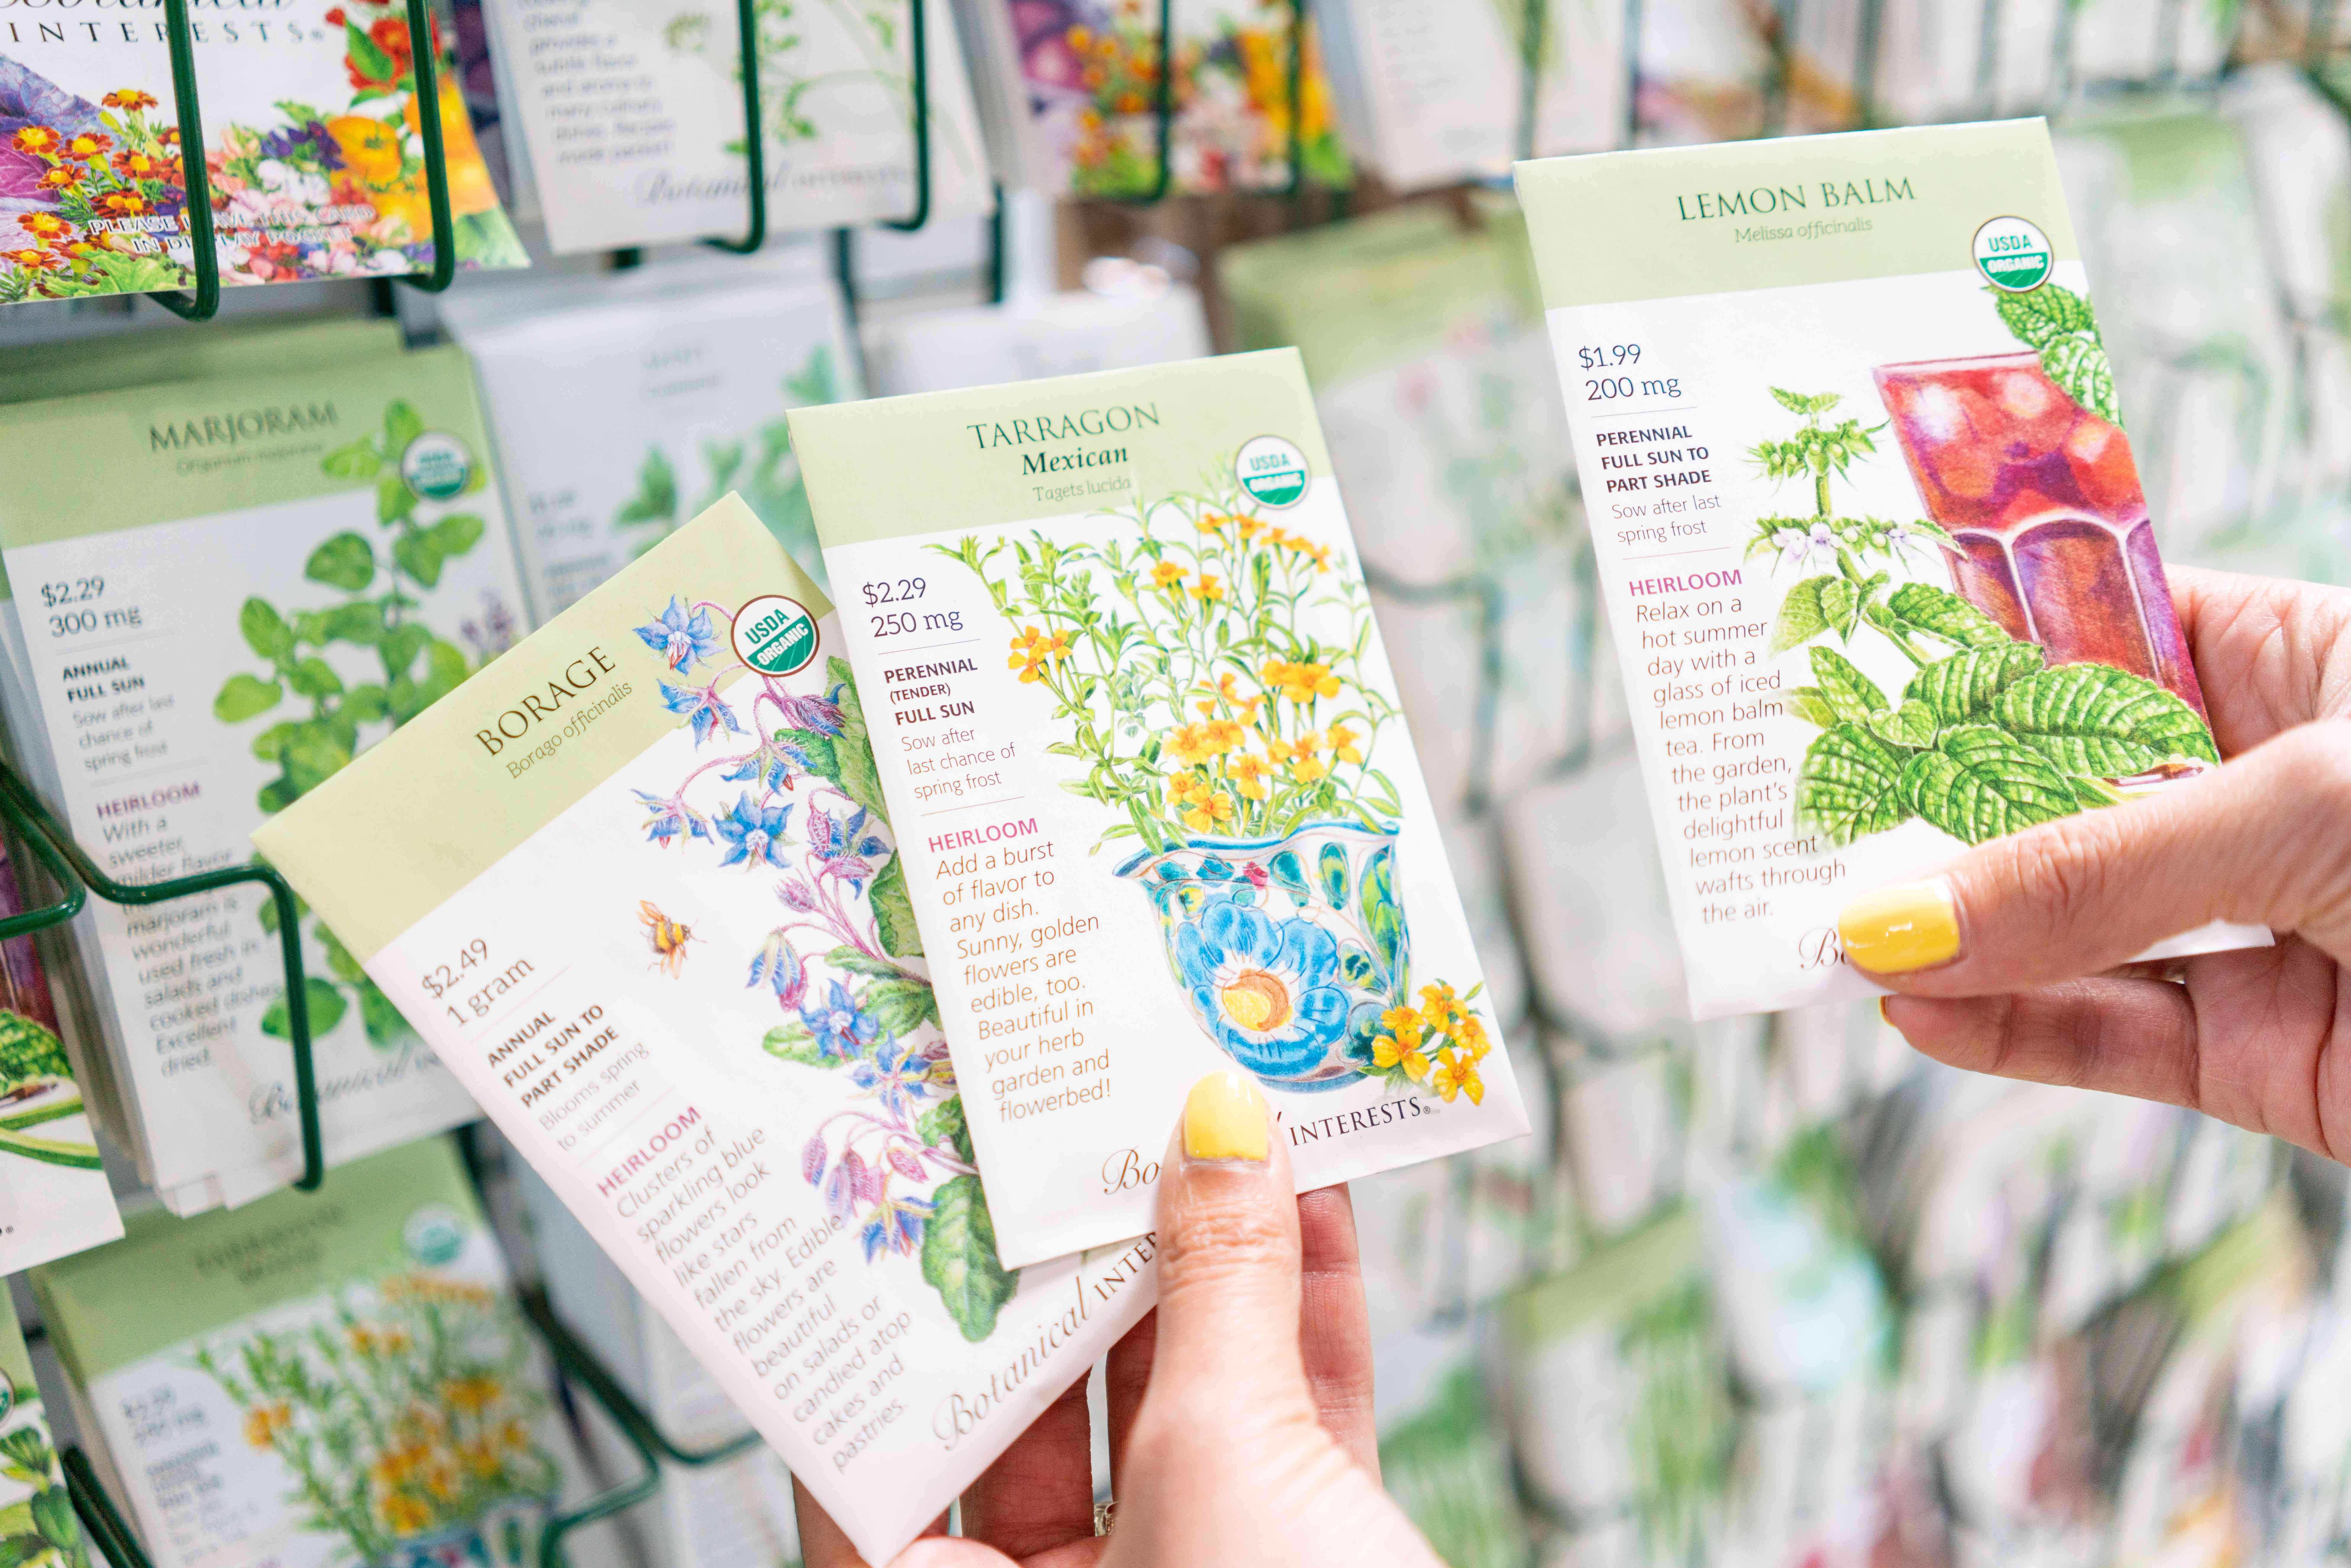 Seed packets selected by hand to be planted